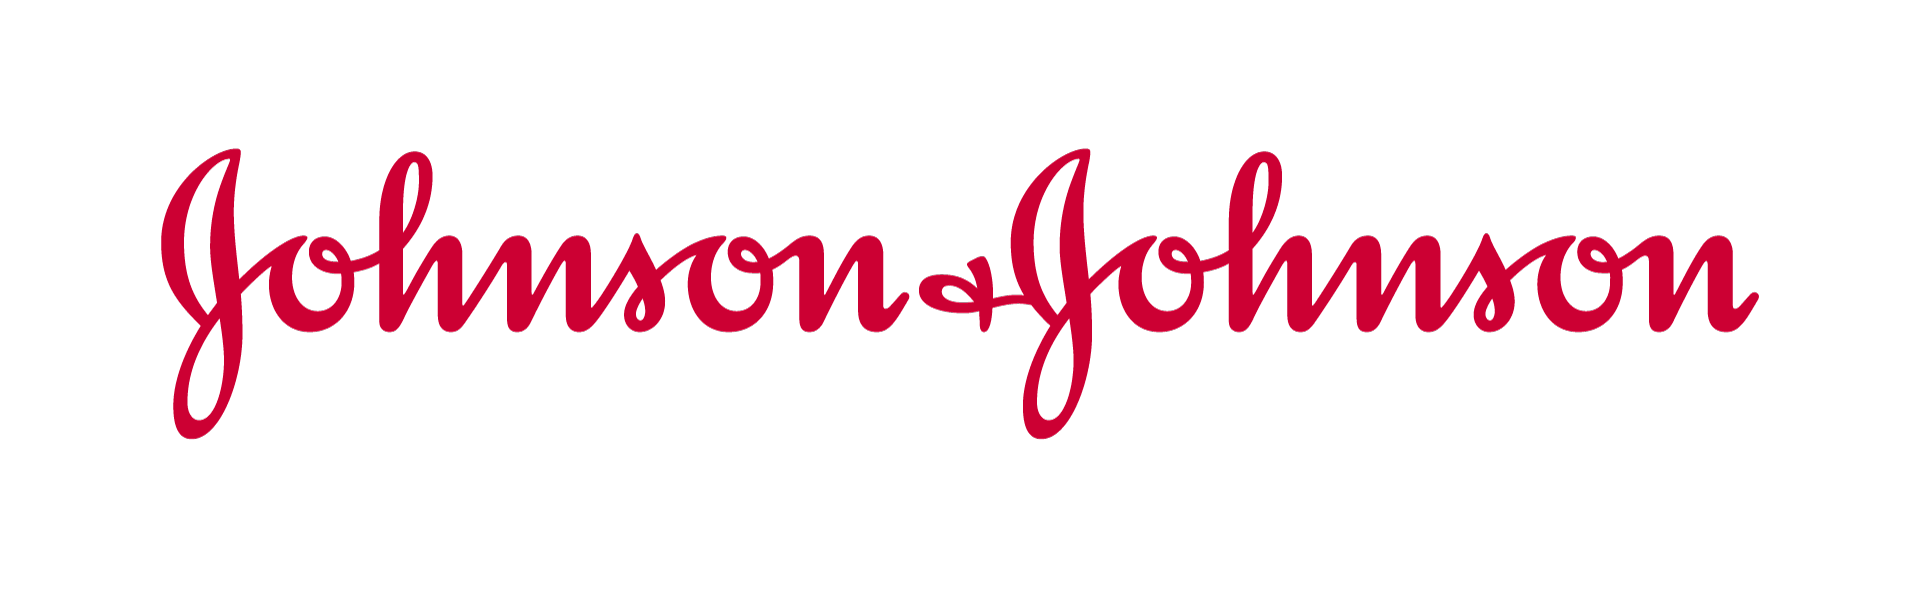 Johnson & Johnson new logo